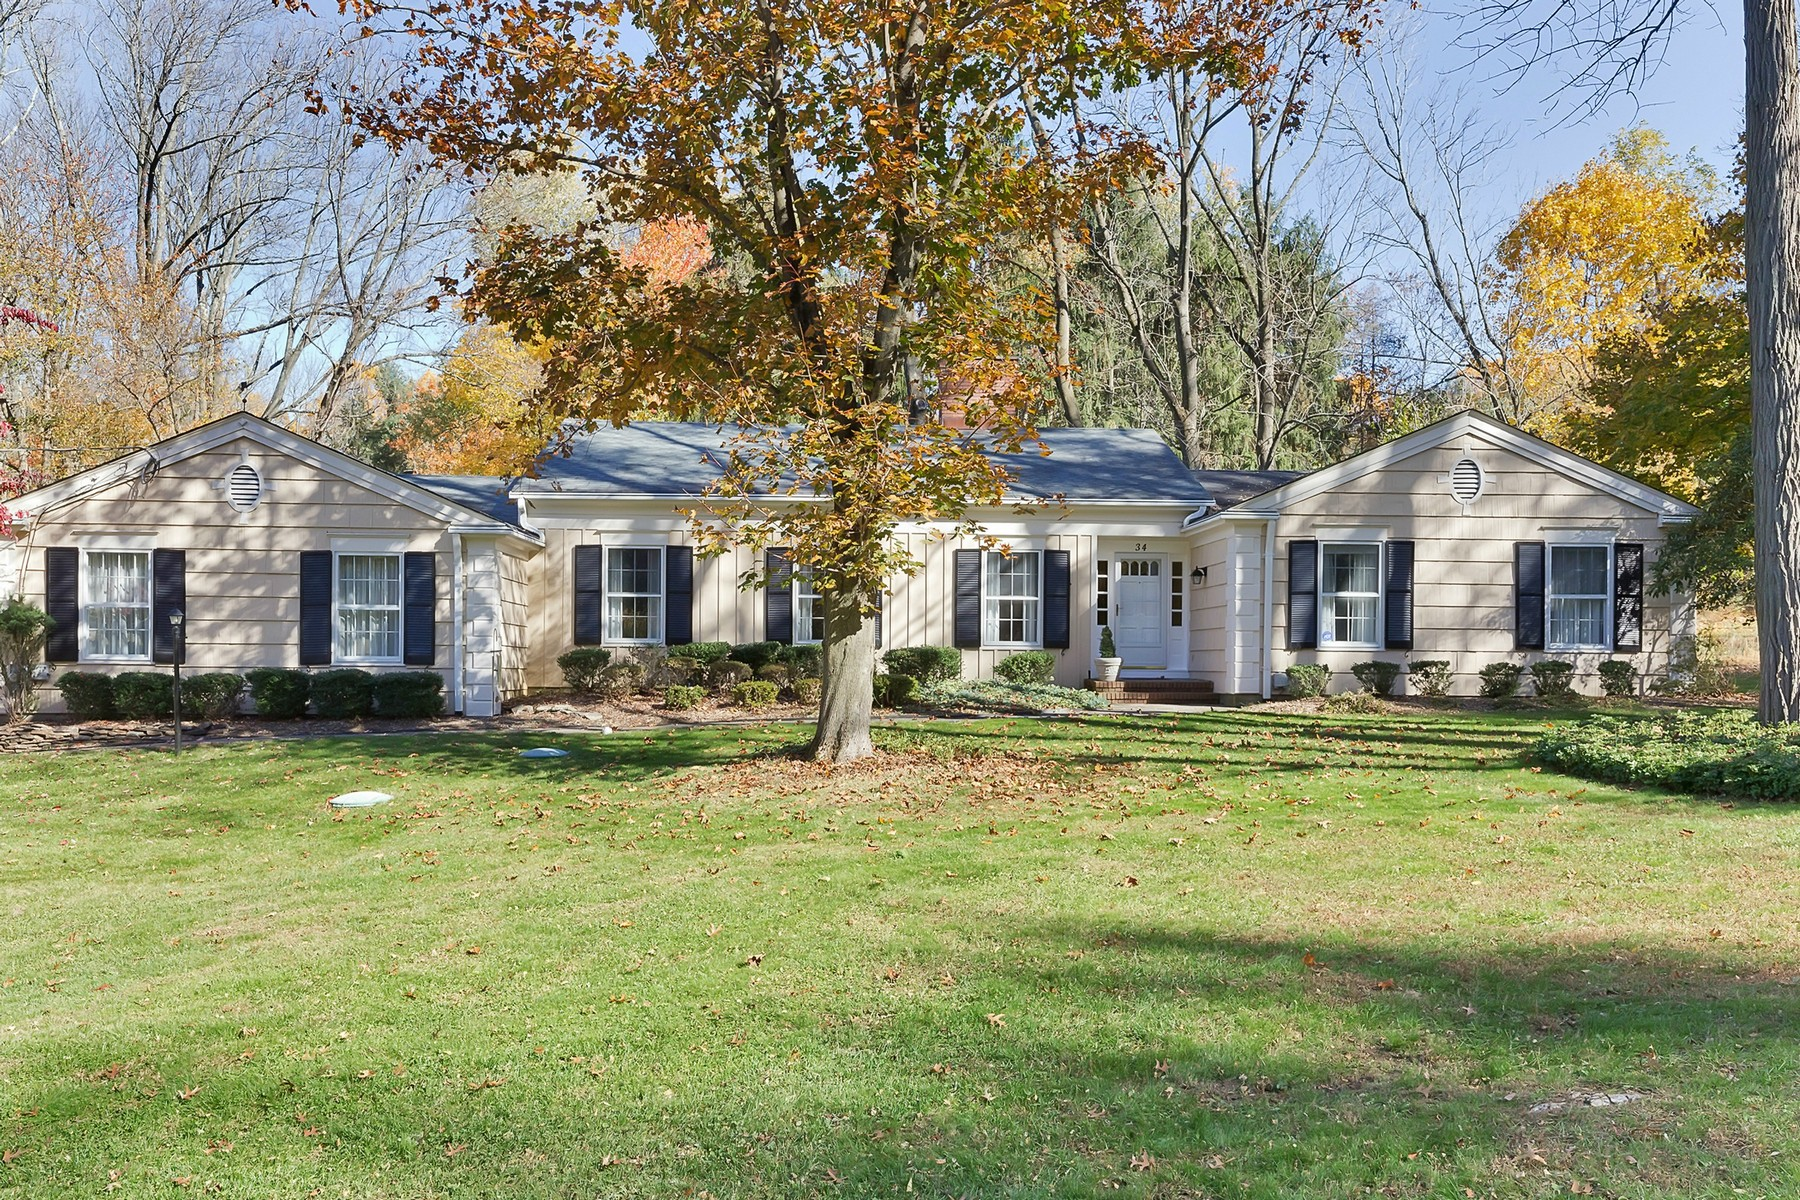 Single Family Home for Sale at Extraordinary Value 34 The Enclosure Colts Neck, New Jersey 07722 United States